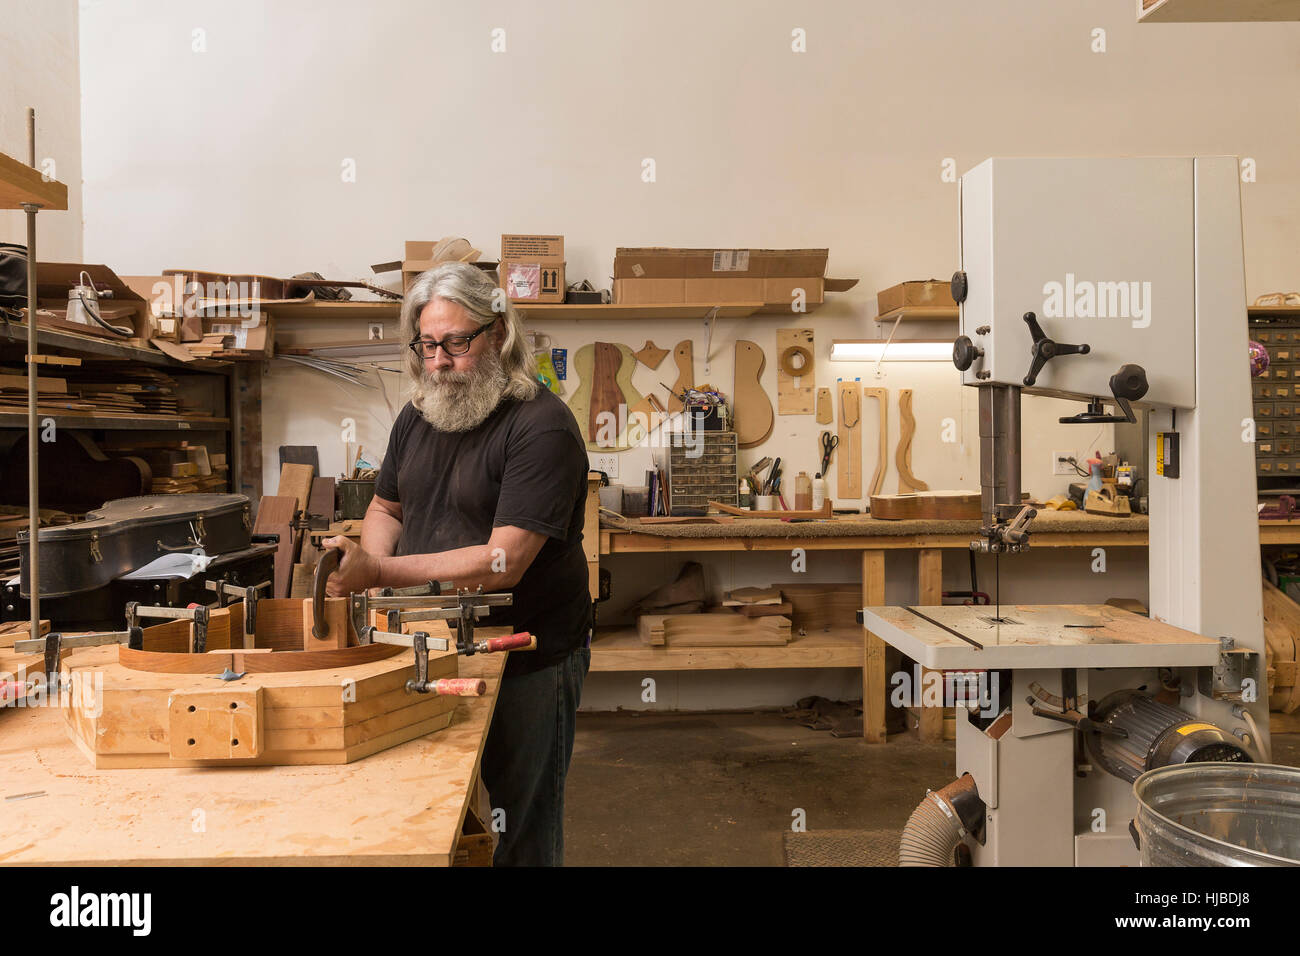 Guitar maker in workshop manufacturing guitar - Stock Image